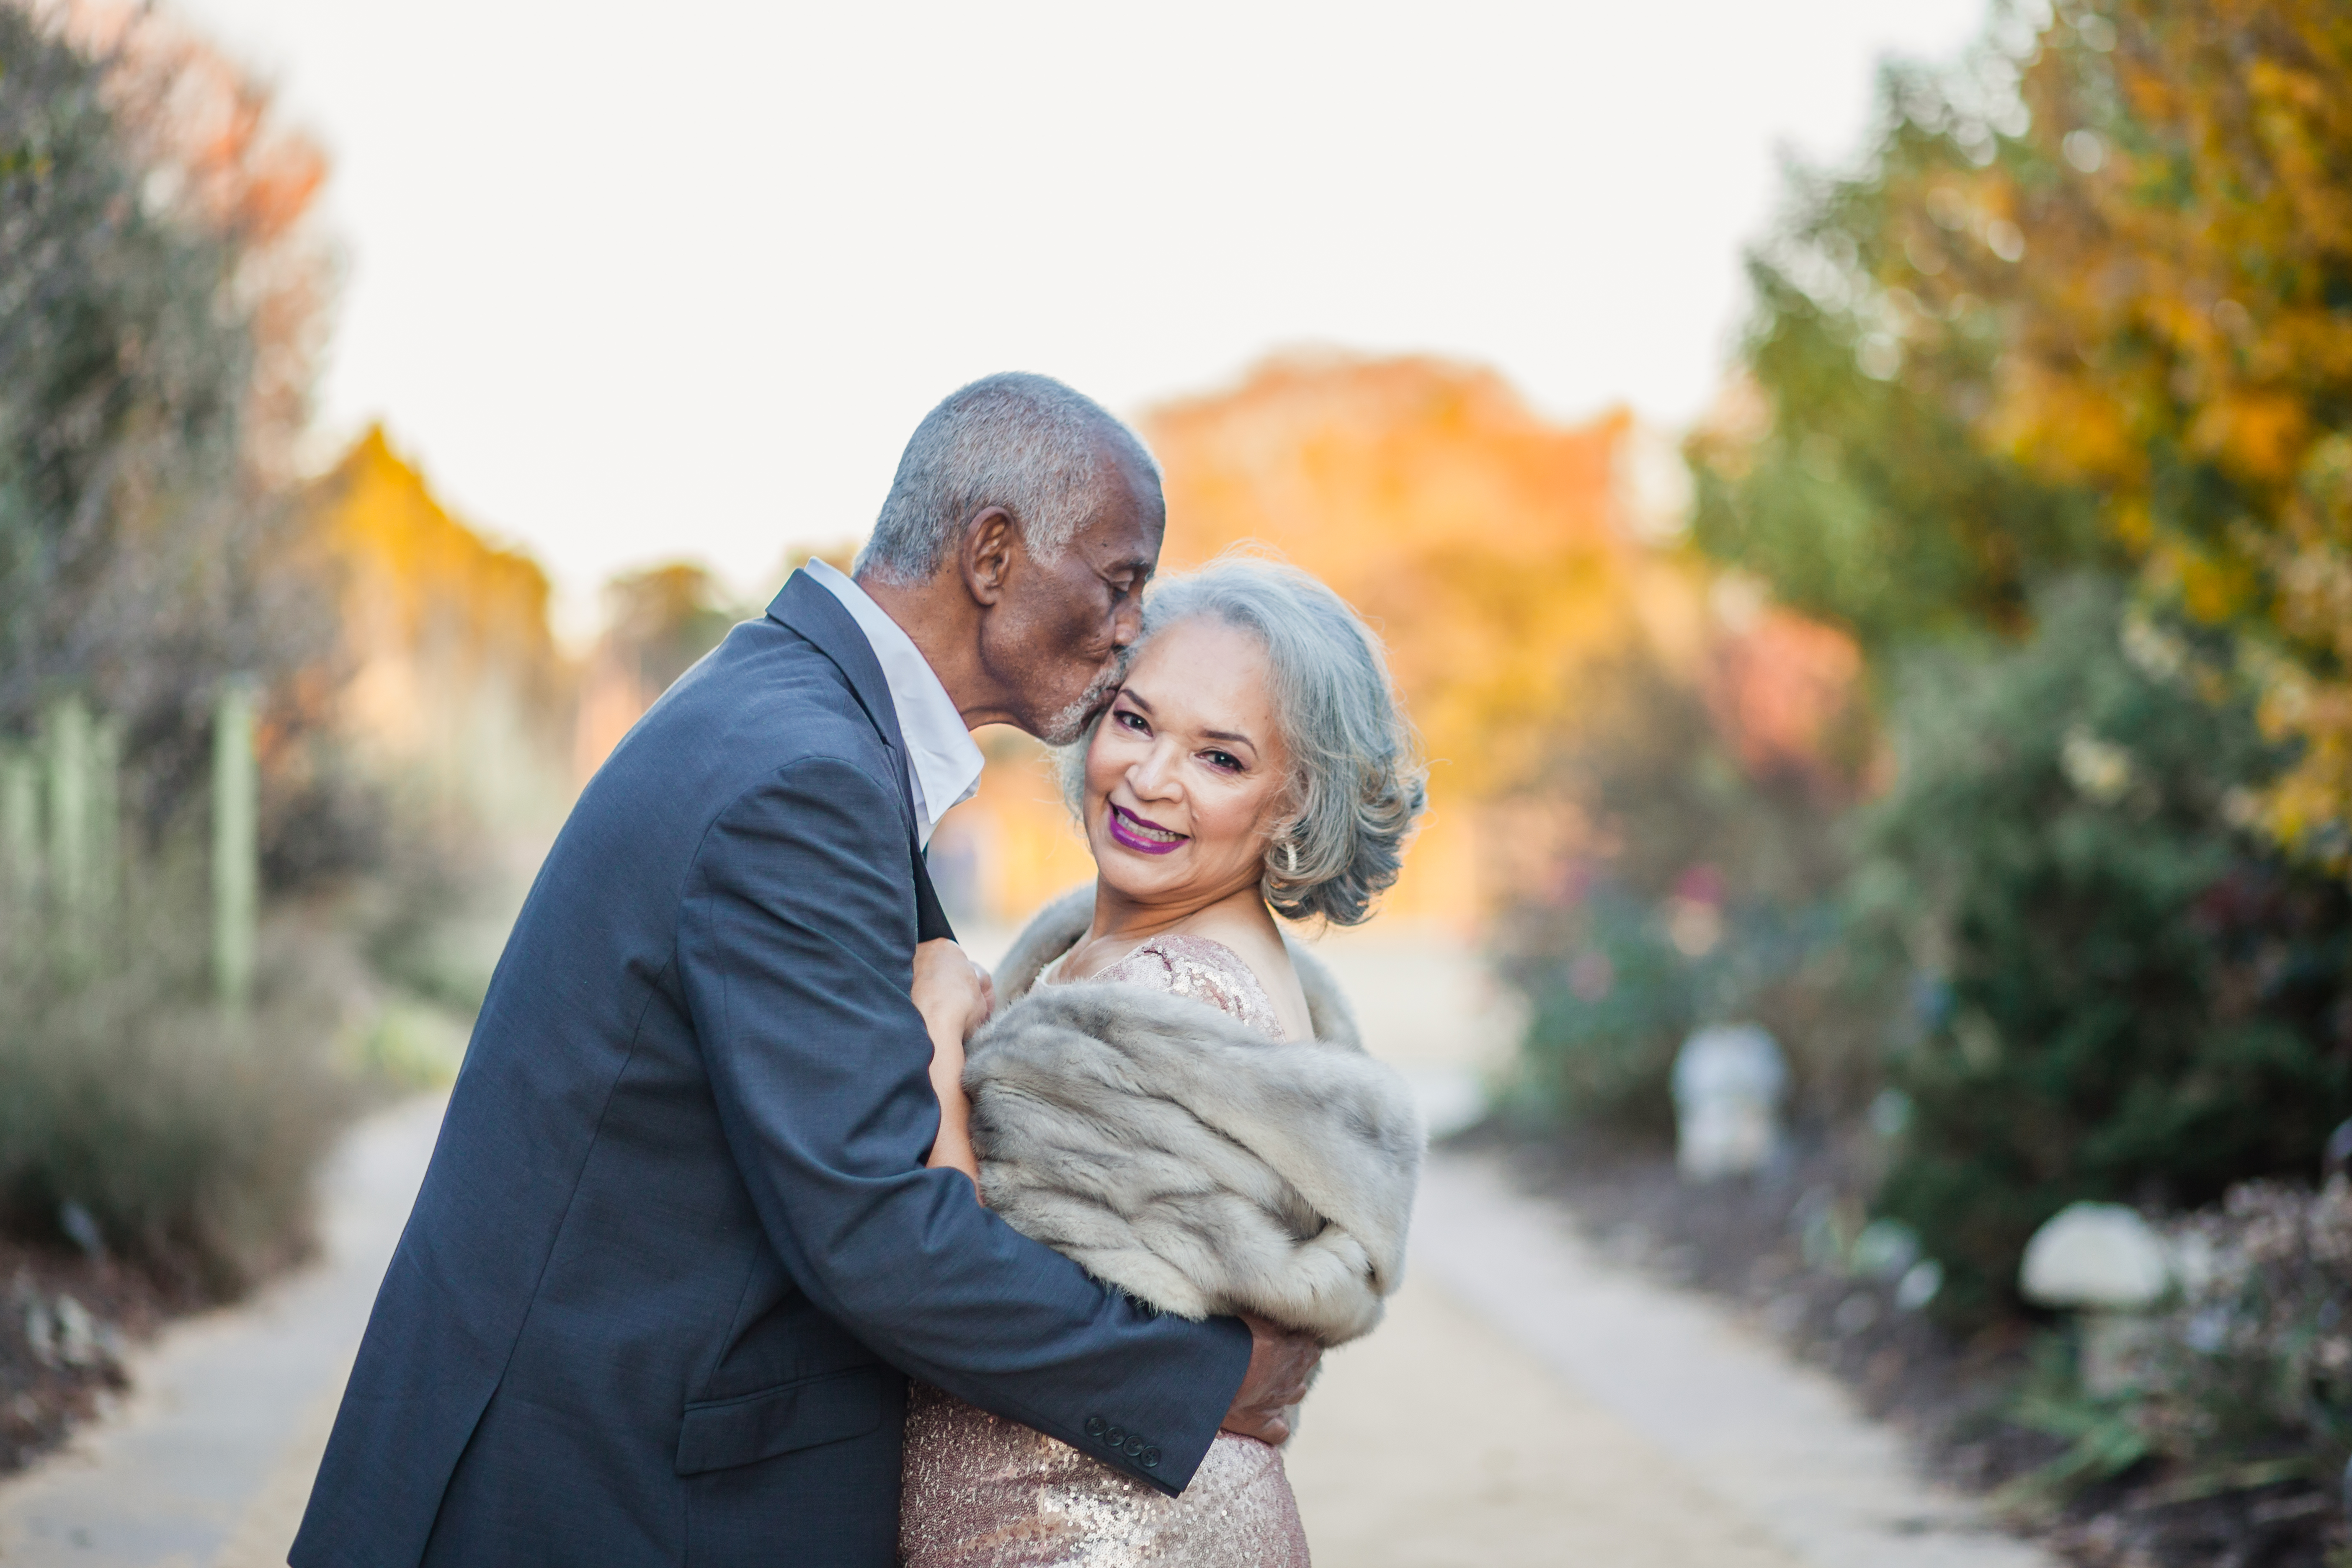 Raleigh Wedding Pographer | Confessions Of A Viral Wedding Photographer Images By Amber Robinson